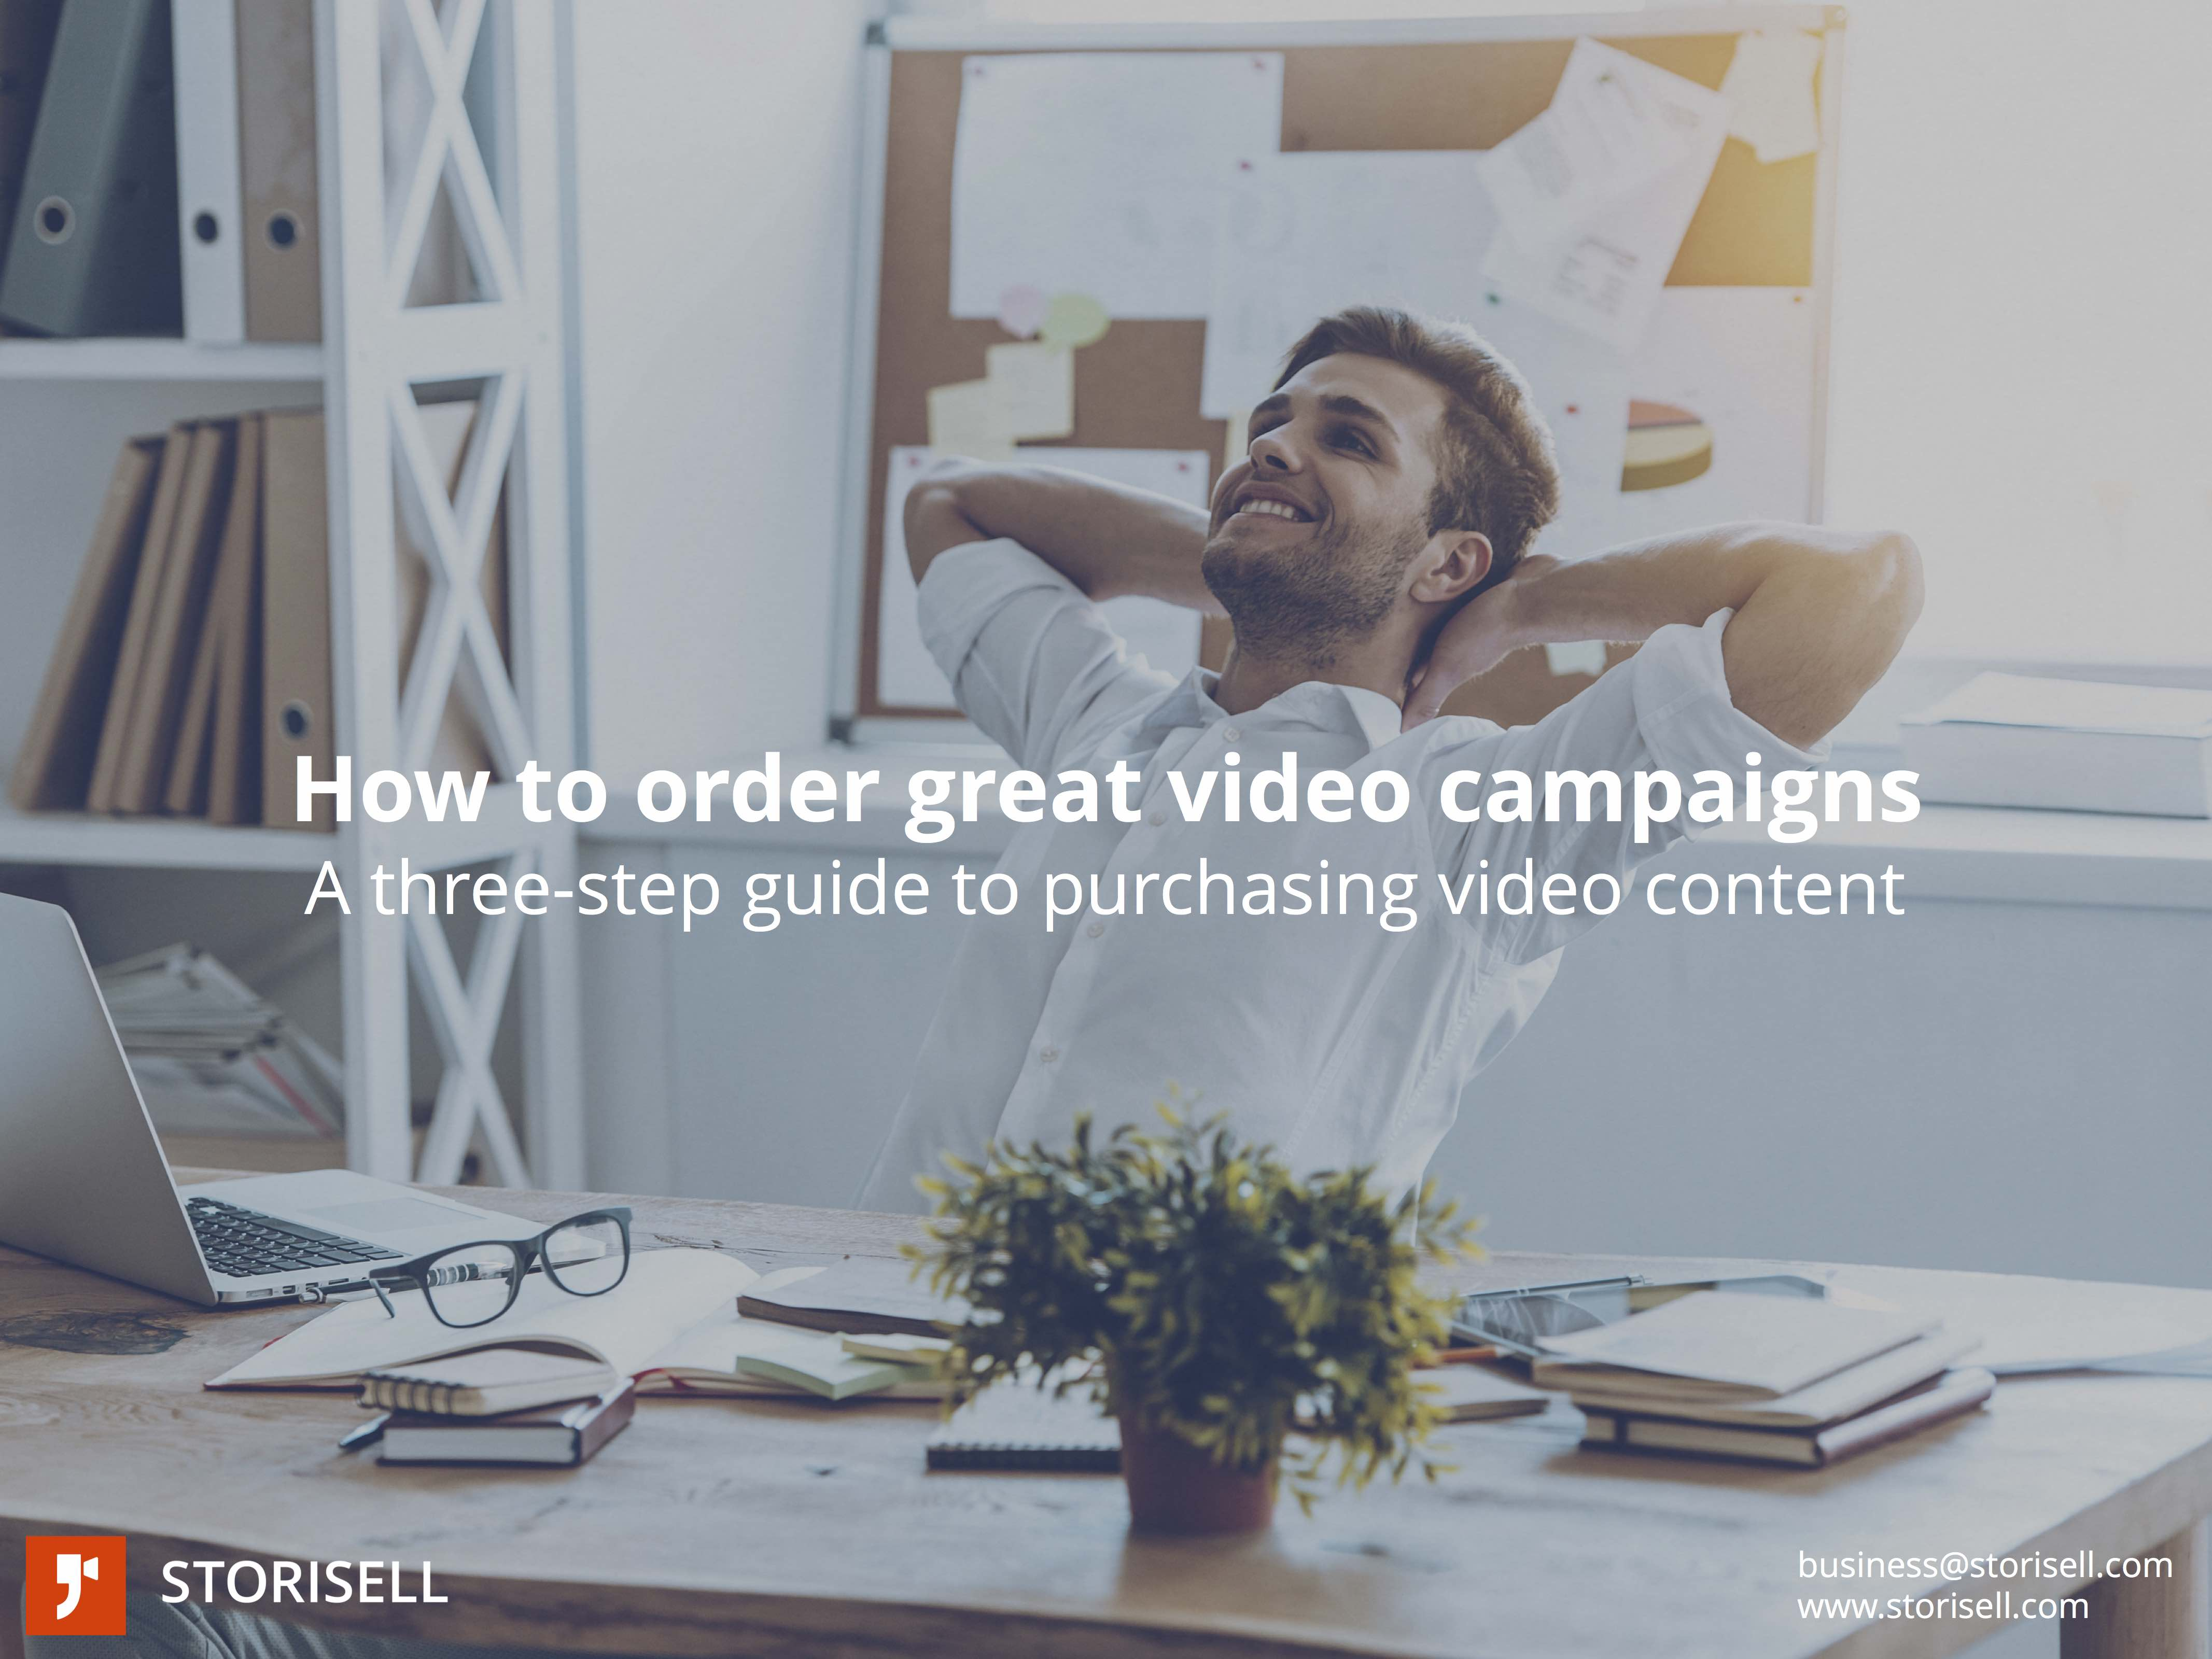 How to order great video campaigns | A three-step guide to purchasing video content